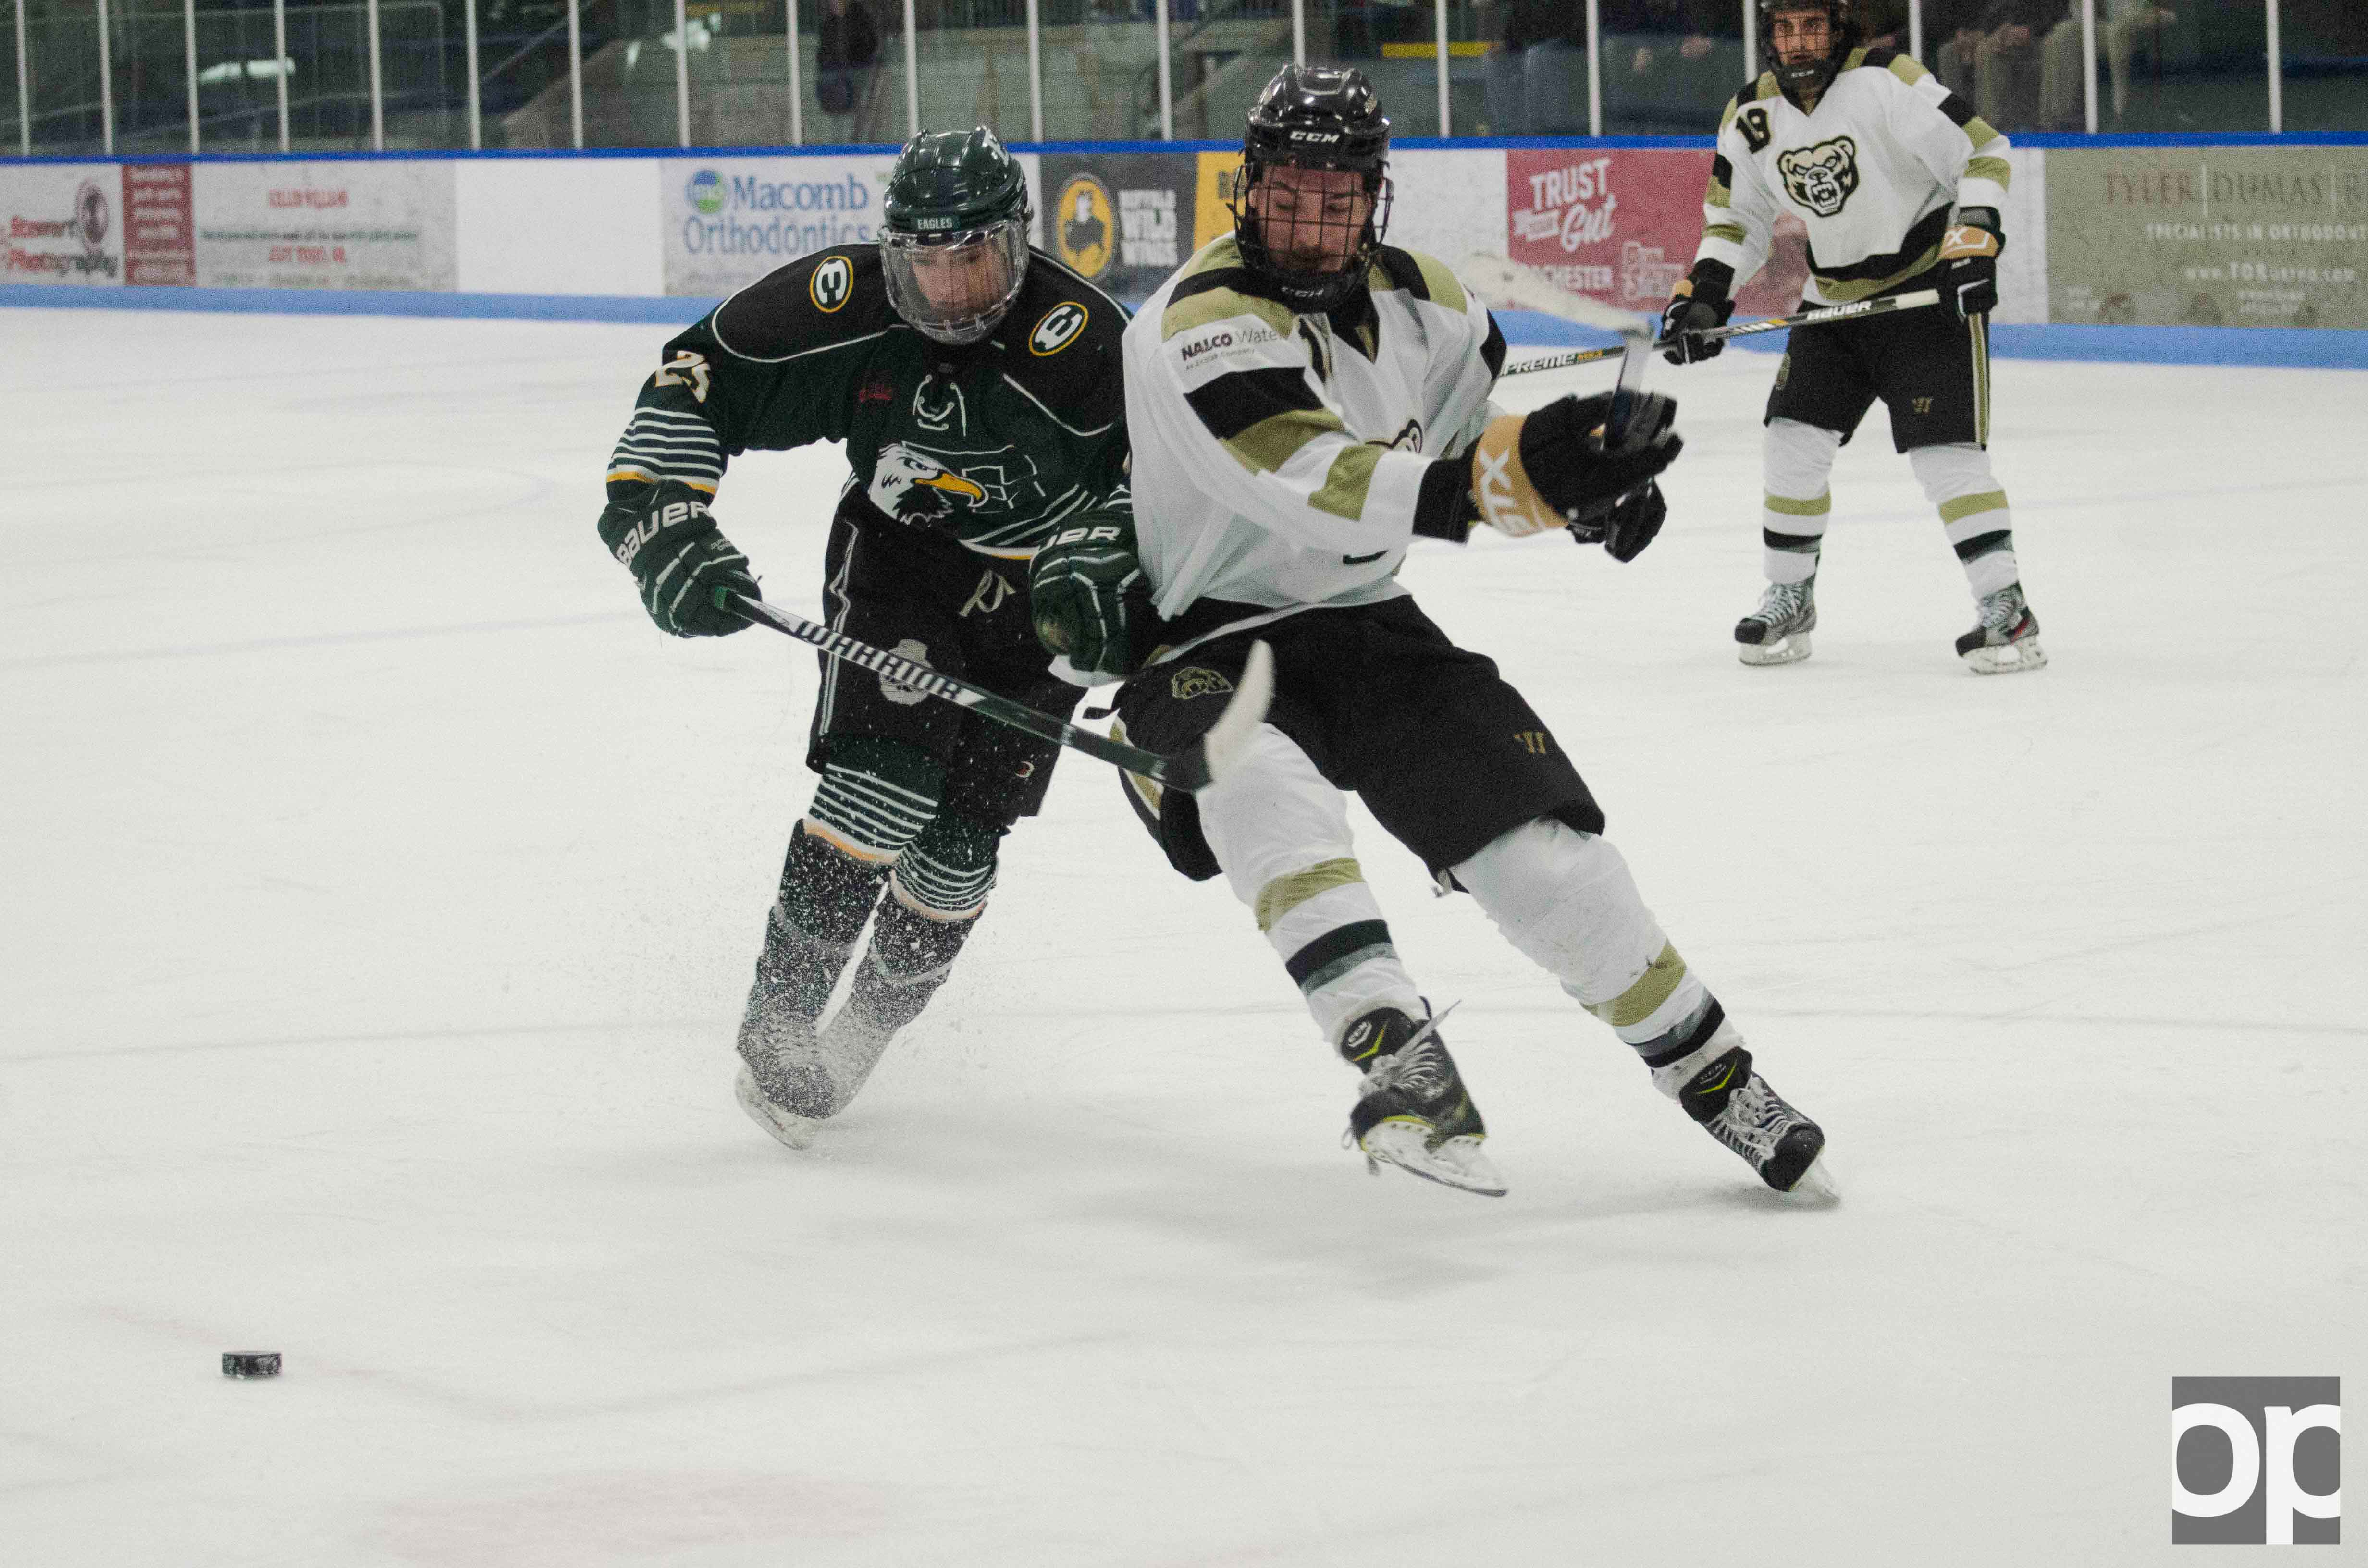 Oakland's Division I club hockey team battled it out against Eastern Michigan University at the Onyx Ice Arena, but eventually lost 4-2.